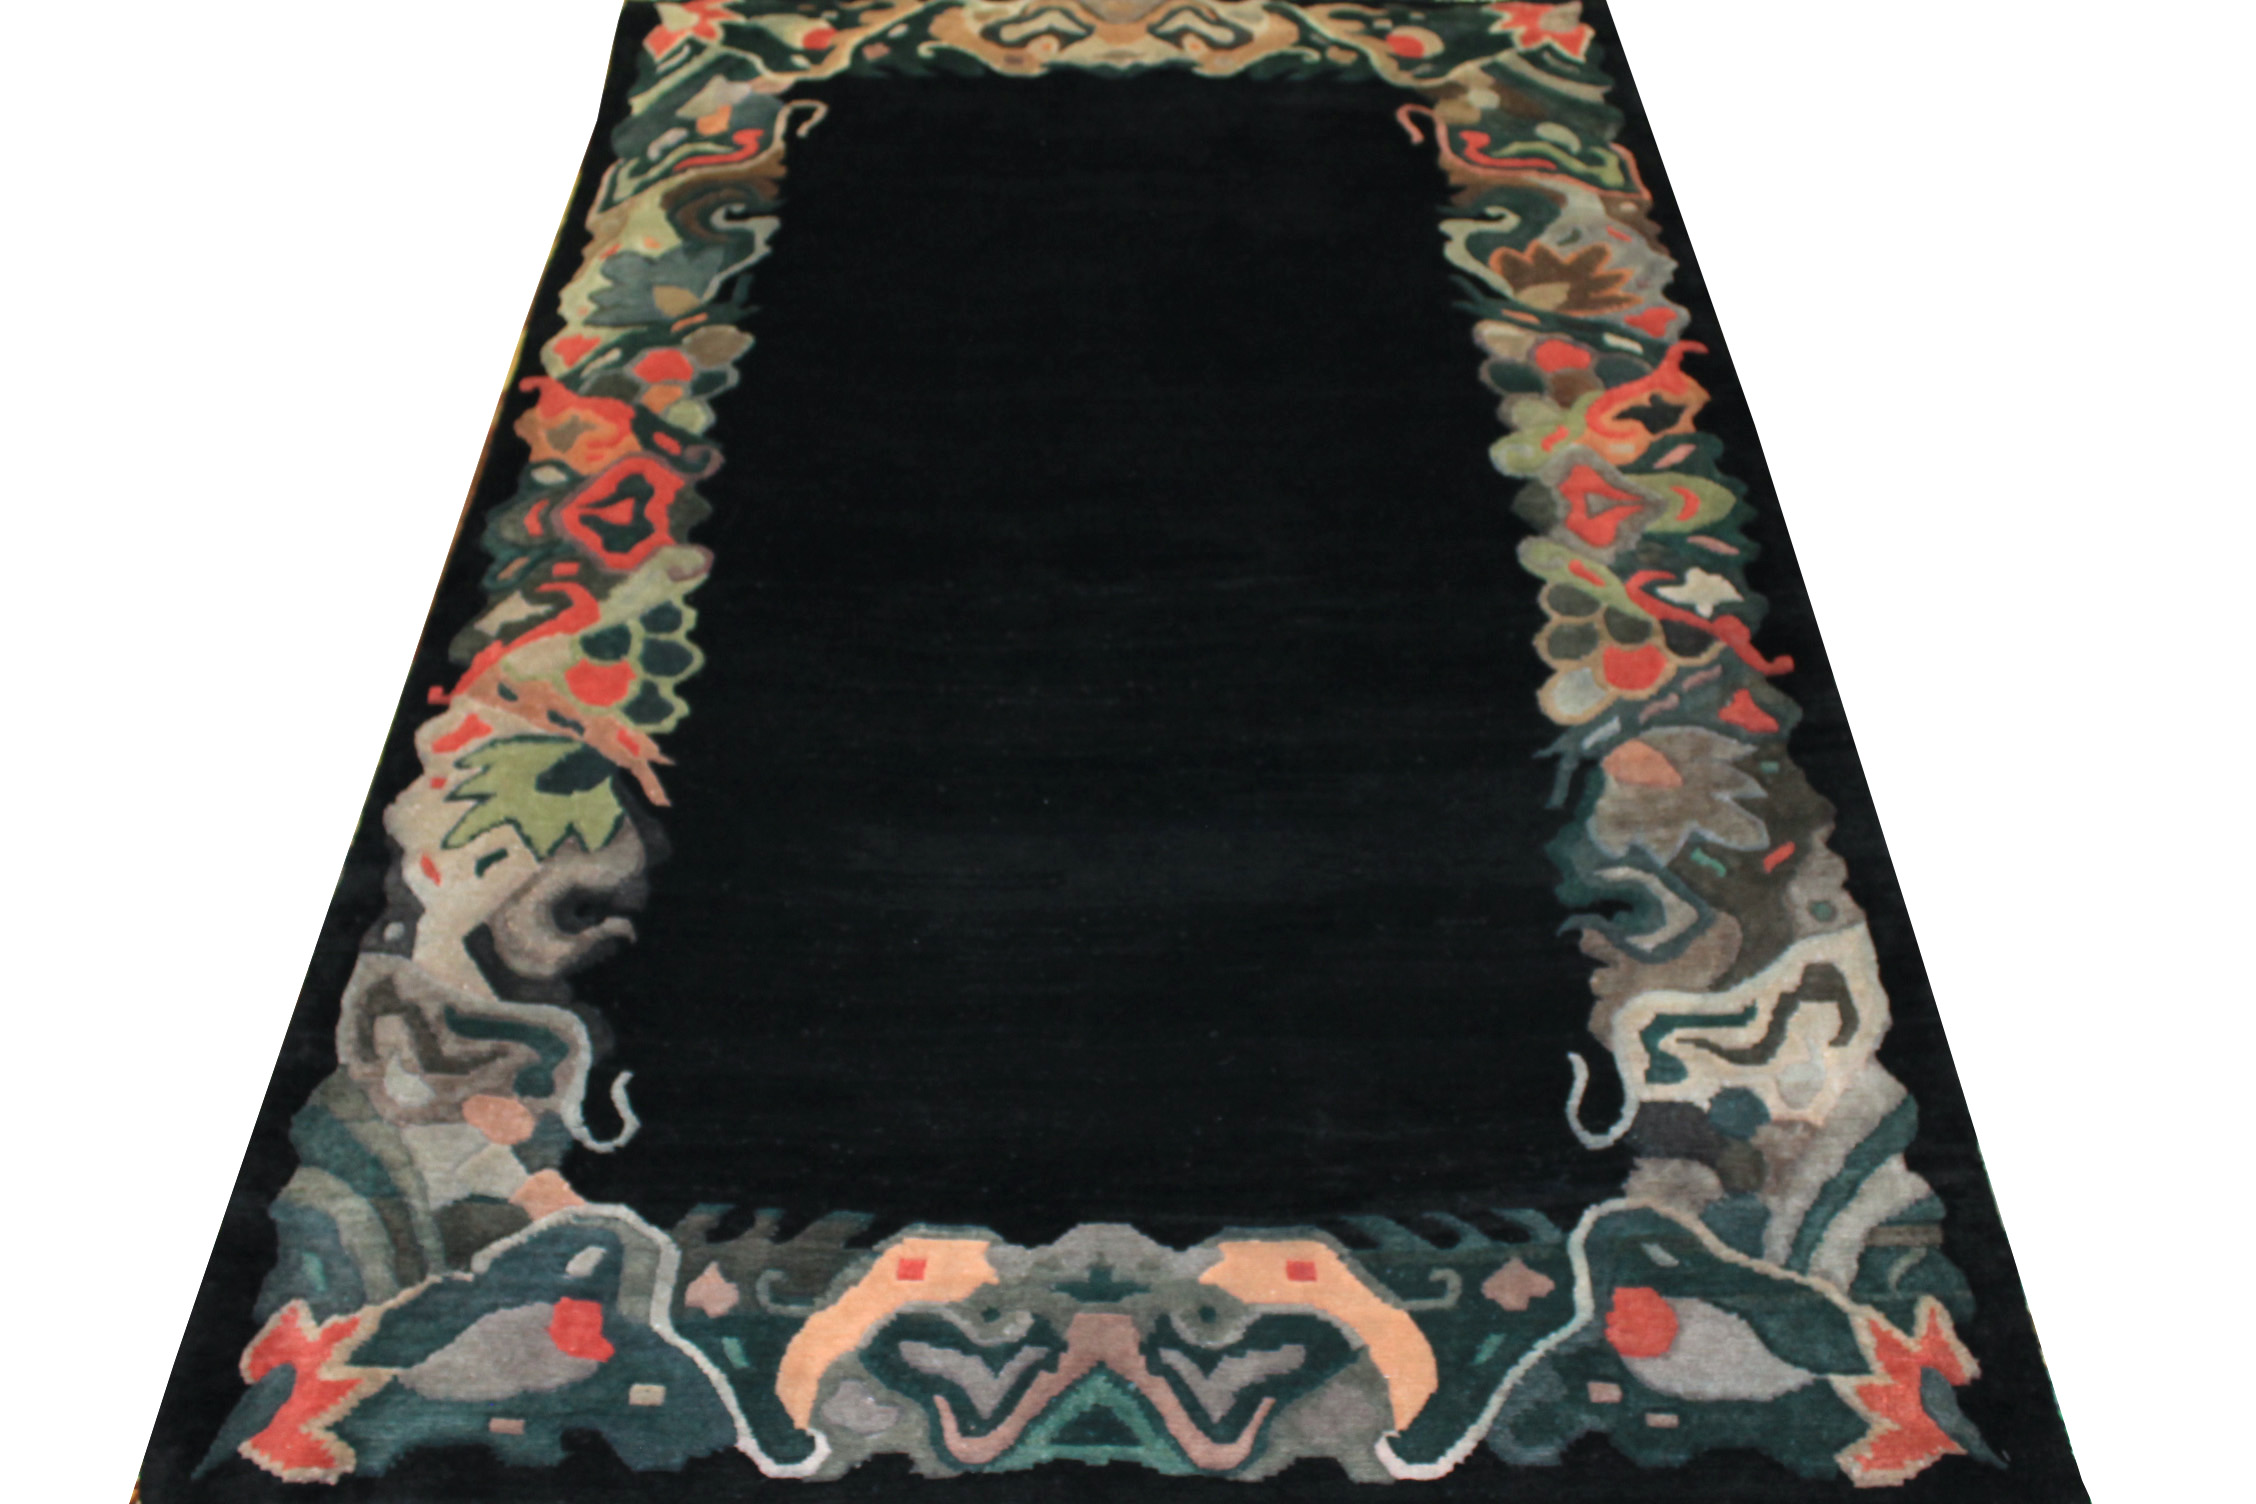 6x9 Contemporary Hand Knotted Wool Area Rug - MR0275